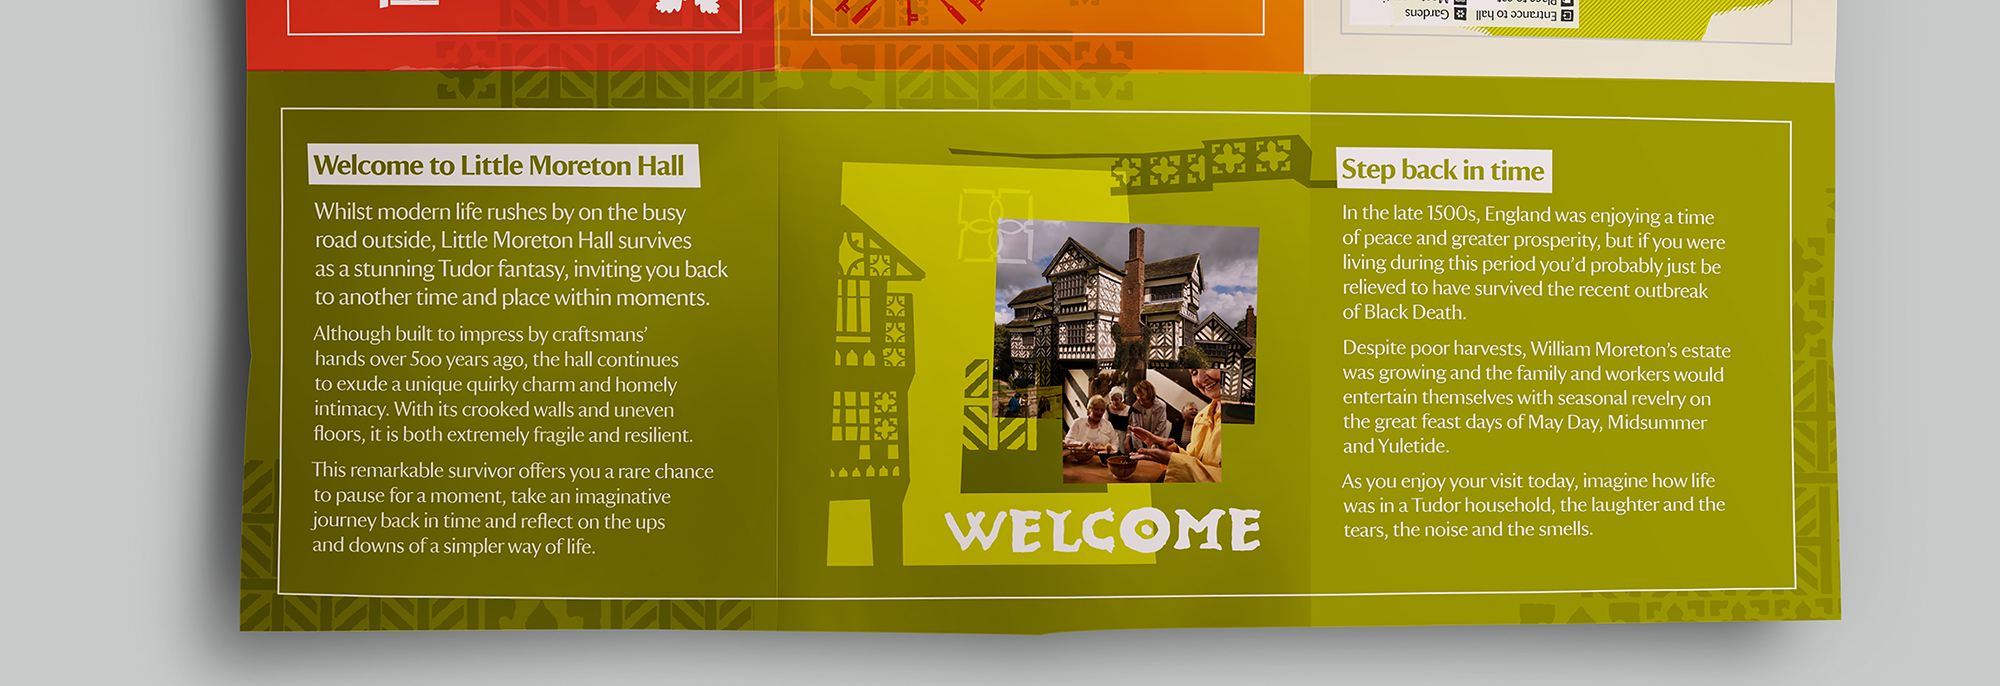 NT_LMH_ welcome_flyer_poster